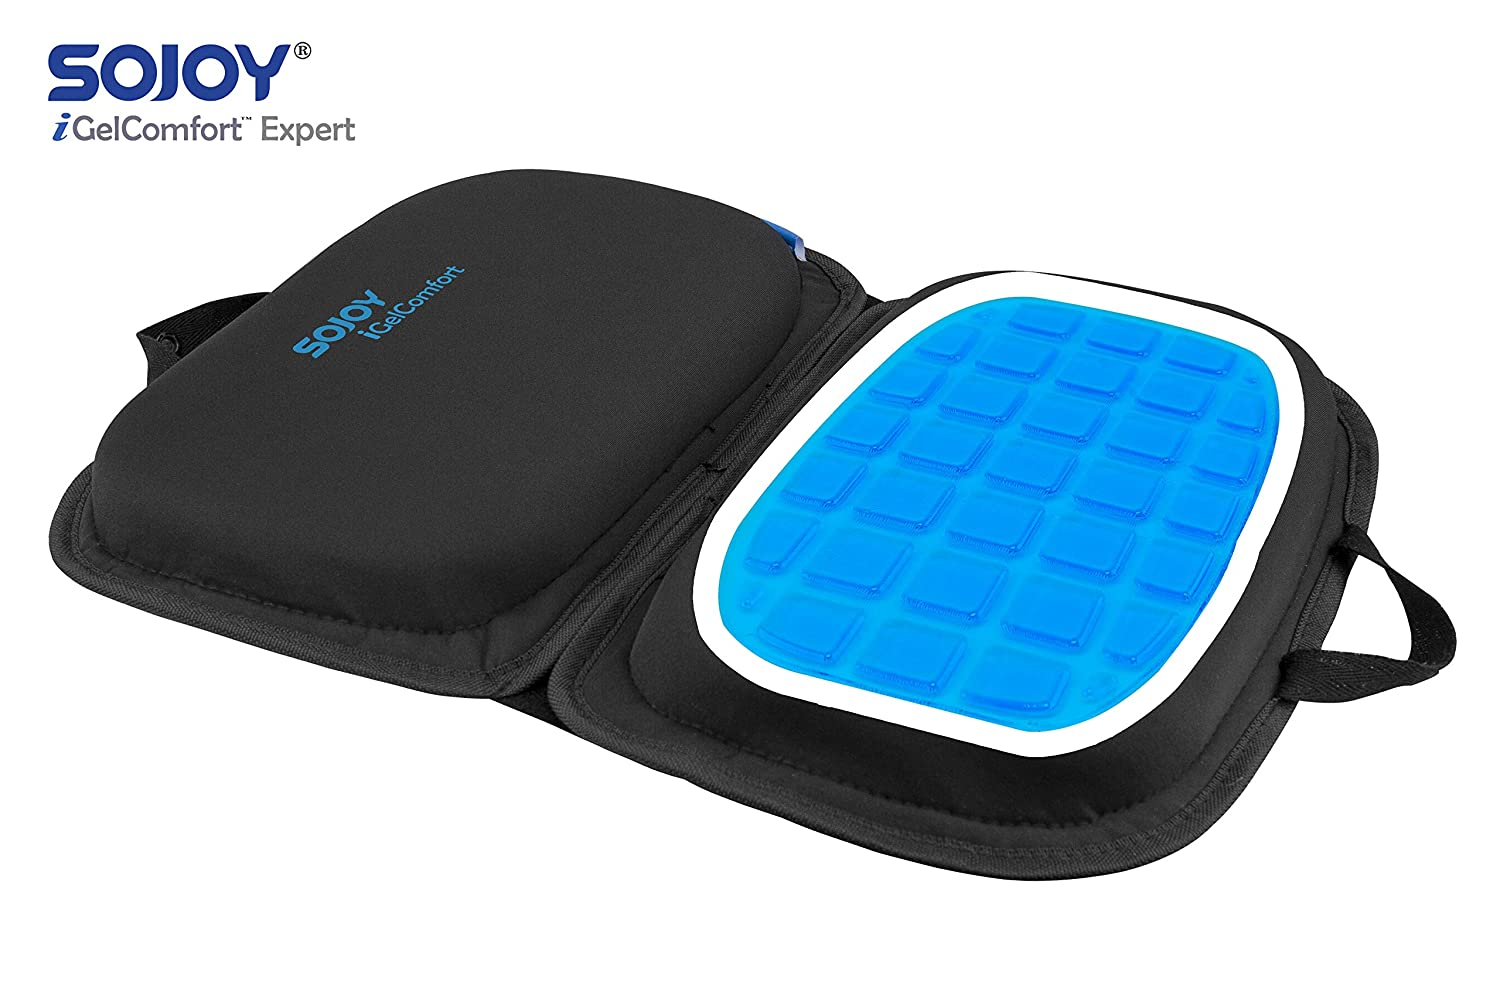 "Sojoy iGelComfort 3 in 1 Foldable Gel Seat Cushion Featured with Memory Foam (A Must-Have Travel Cushion! Smart, Easy Travel Cushion) (Size: 18.5"" x 15"" x 2"")"